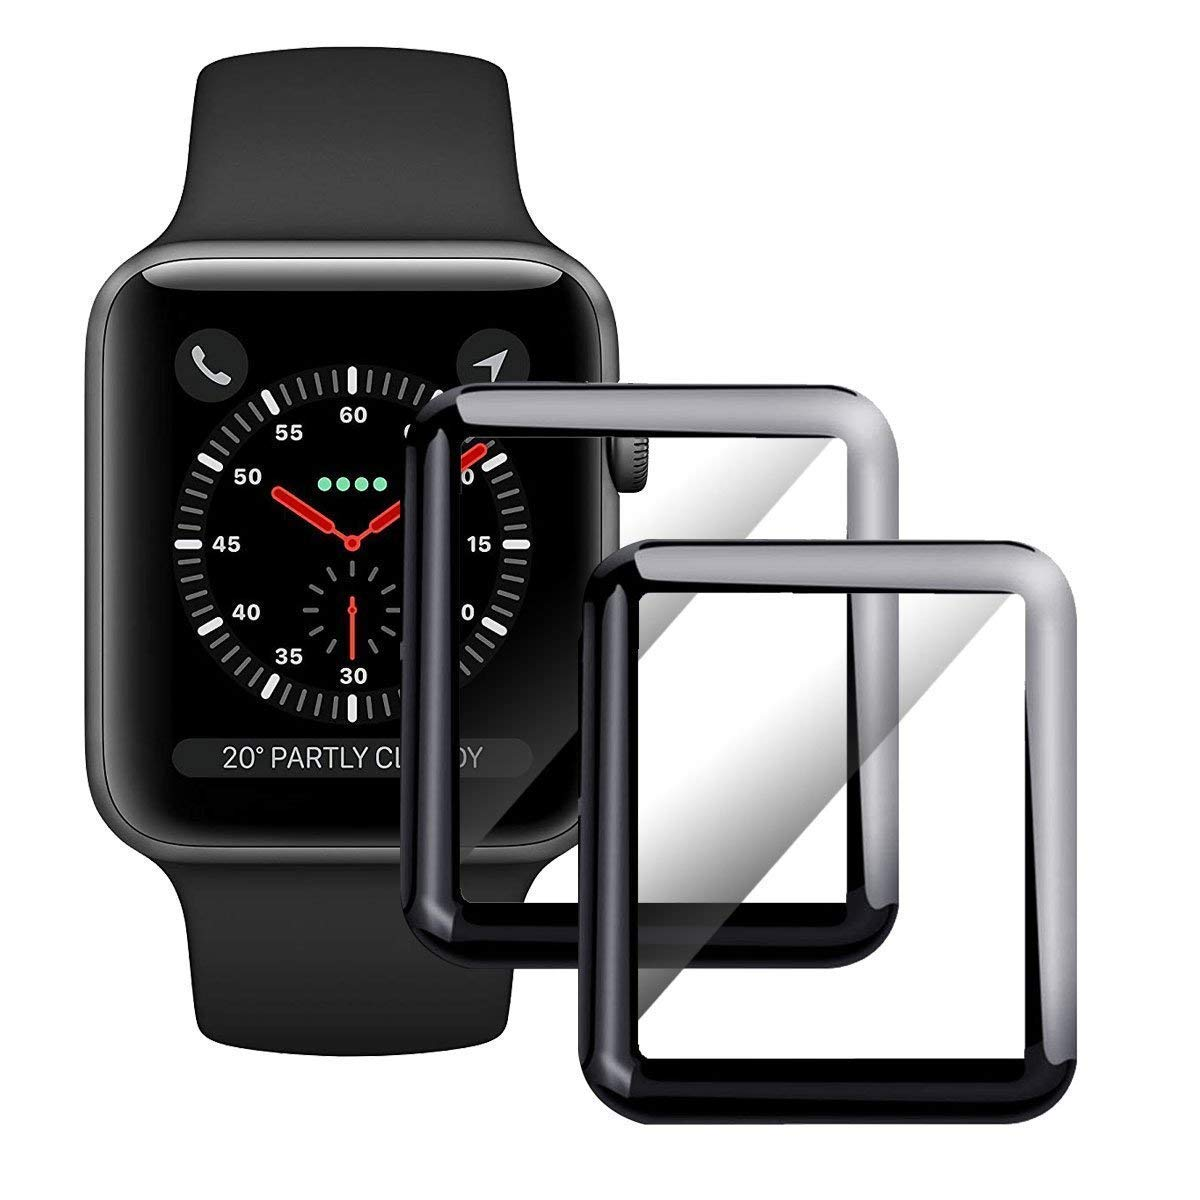 [2 - Pack] Screen Protector for Apple Watch 42mm, Tempered Glass Scratch Resistant Anti-Bubble Full Coverage Screen Film Compatible with iWatch 42mm Series 3/2/1 by NICEDAYM